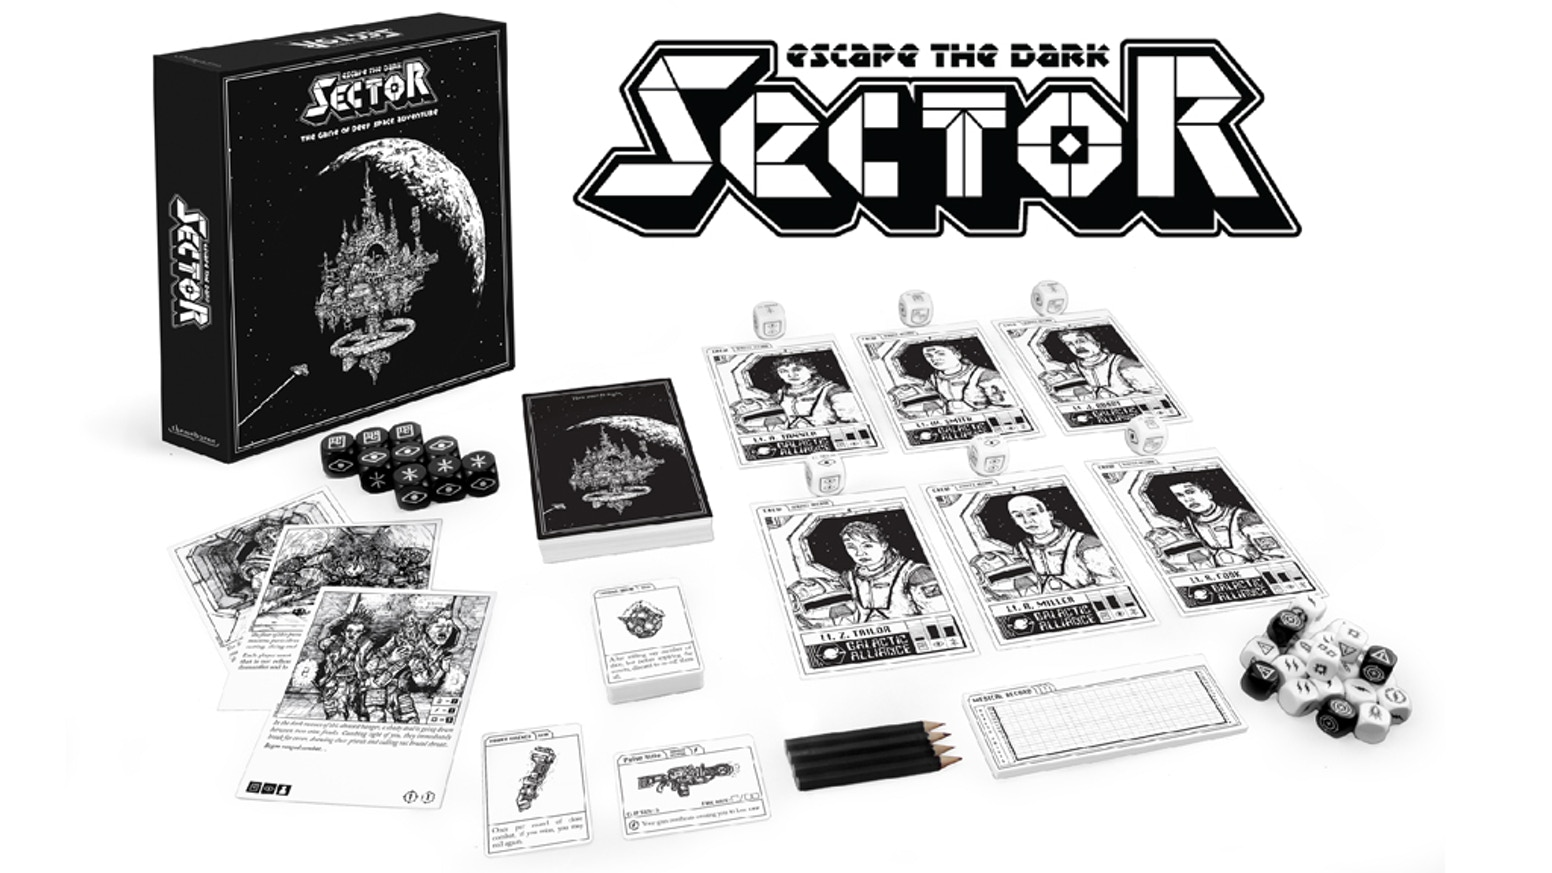 The game of deep space adventure, for 1-4 players - coming spring/summer 2020. Join our mailing list to stay up to date at: www.themeborne.com. Got questions? contact@themeborne.com